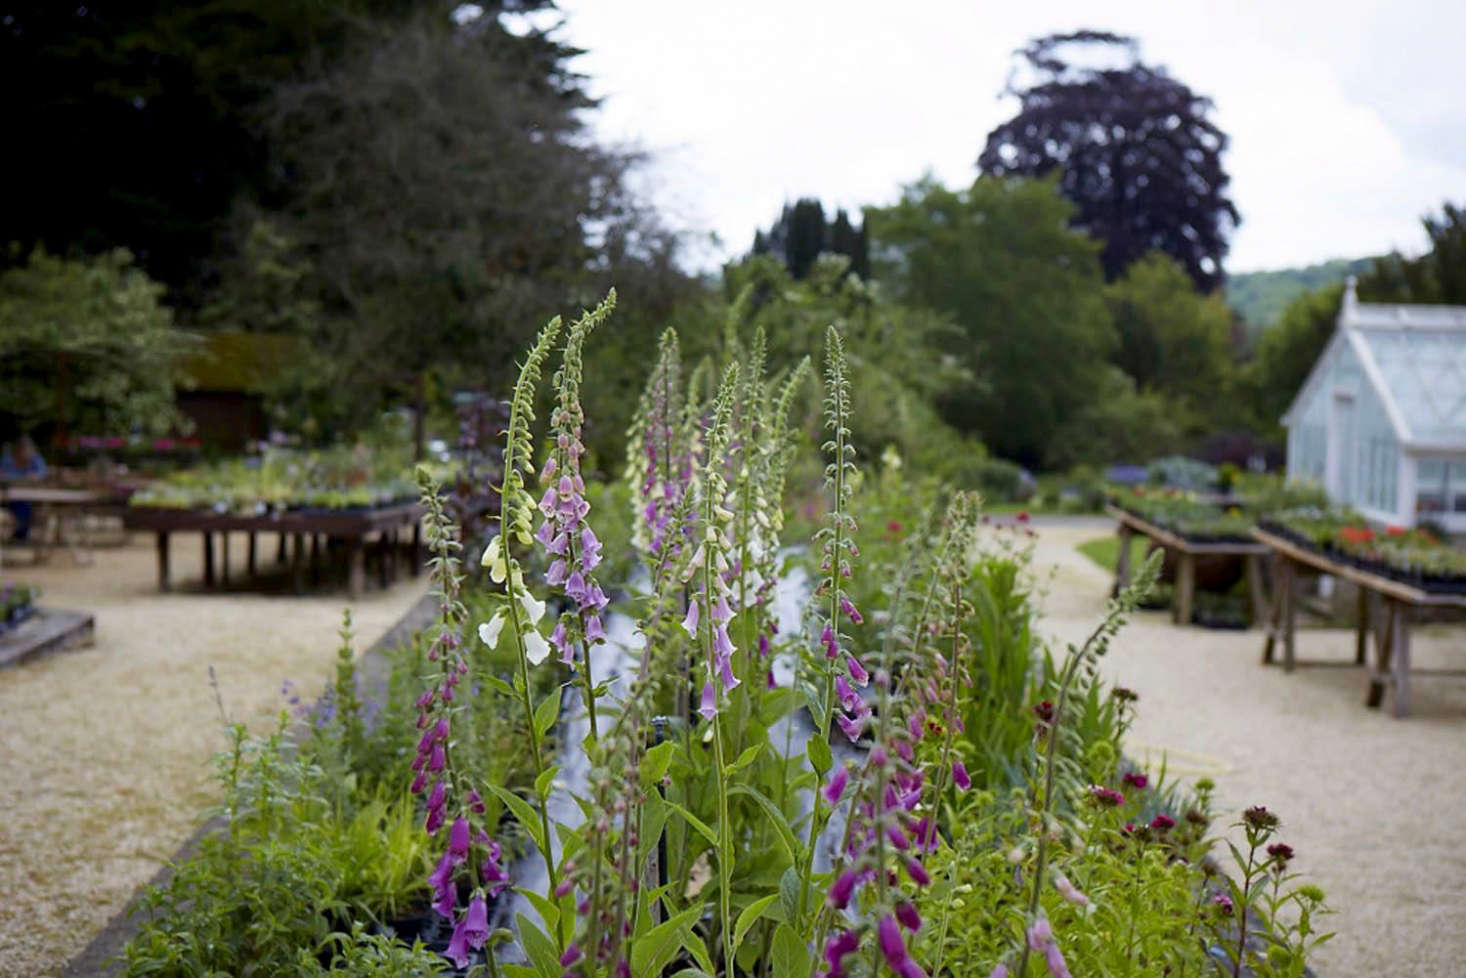 Foxgloves for sale at Miserden Nursery. See more at Ridiculously Charming, Even for the Cotswolds: The Nursery at Miserden. Photograph by Britt Willoughby Dyer.